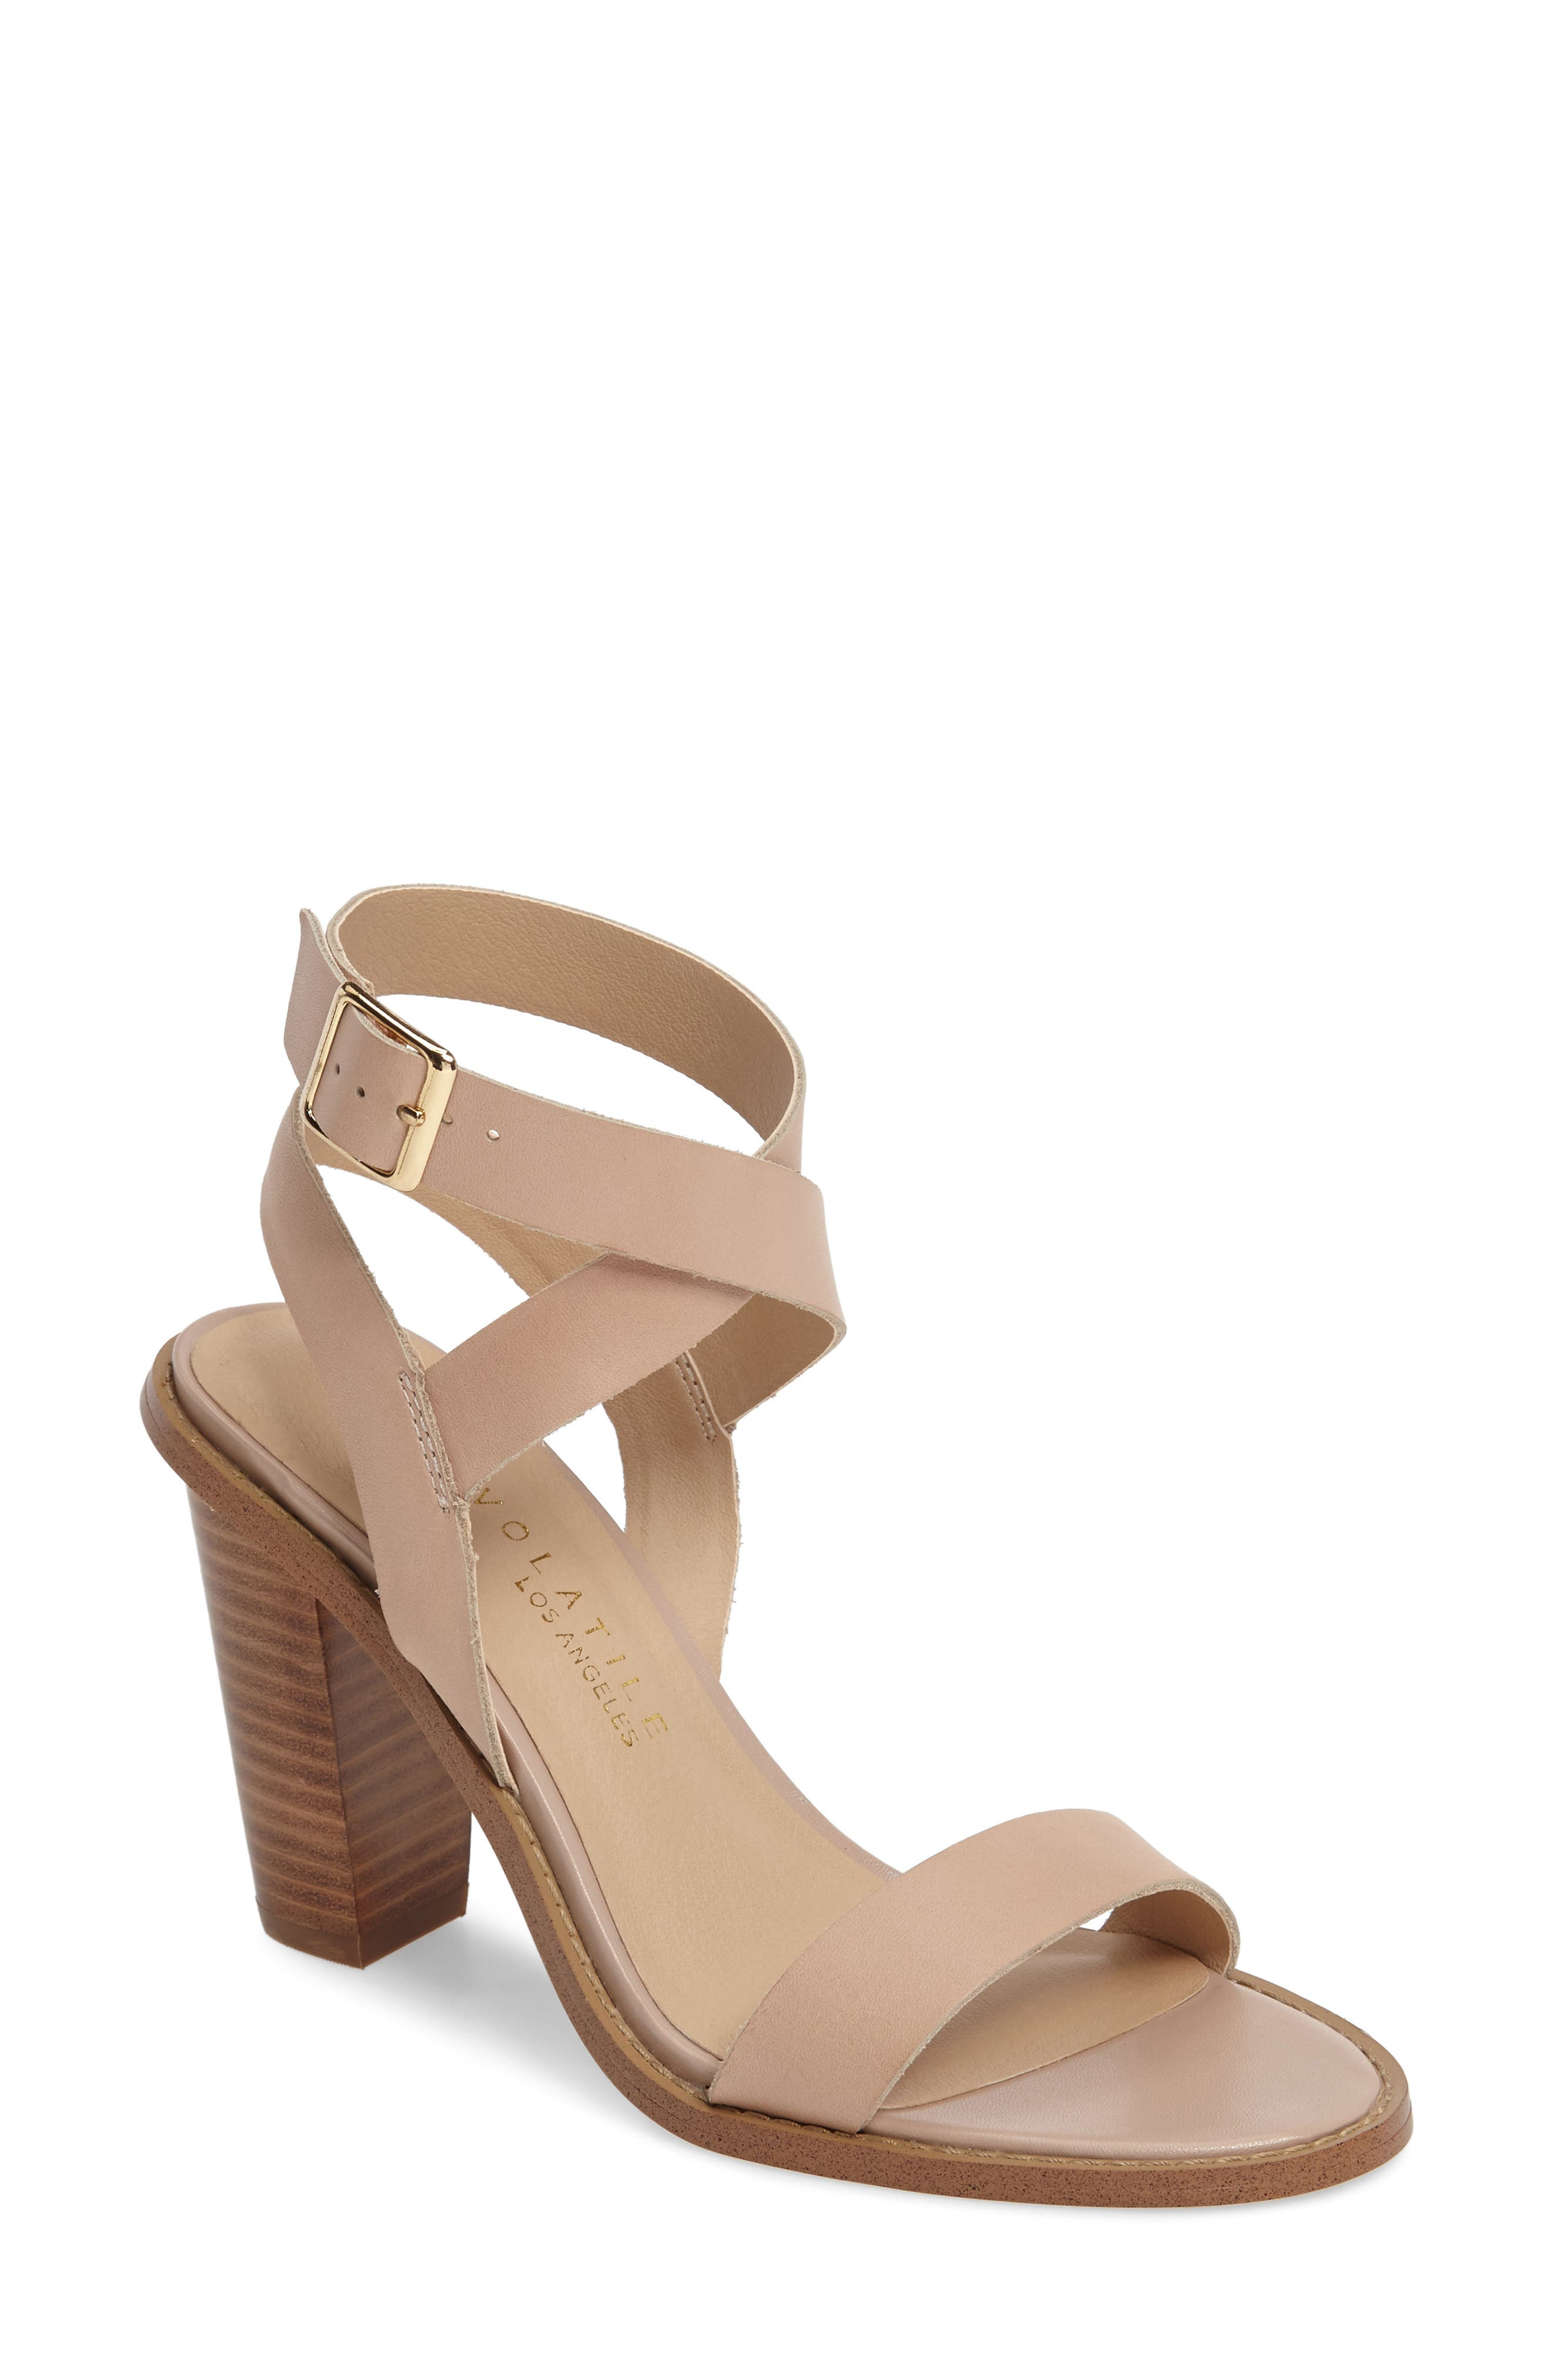 Alternate Image 1 Selected - Very Volatile Poshy Ankle Wrap Sandal (Women)